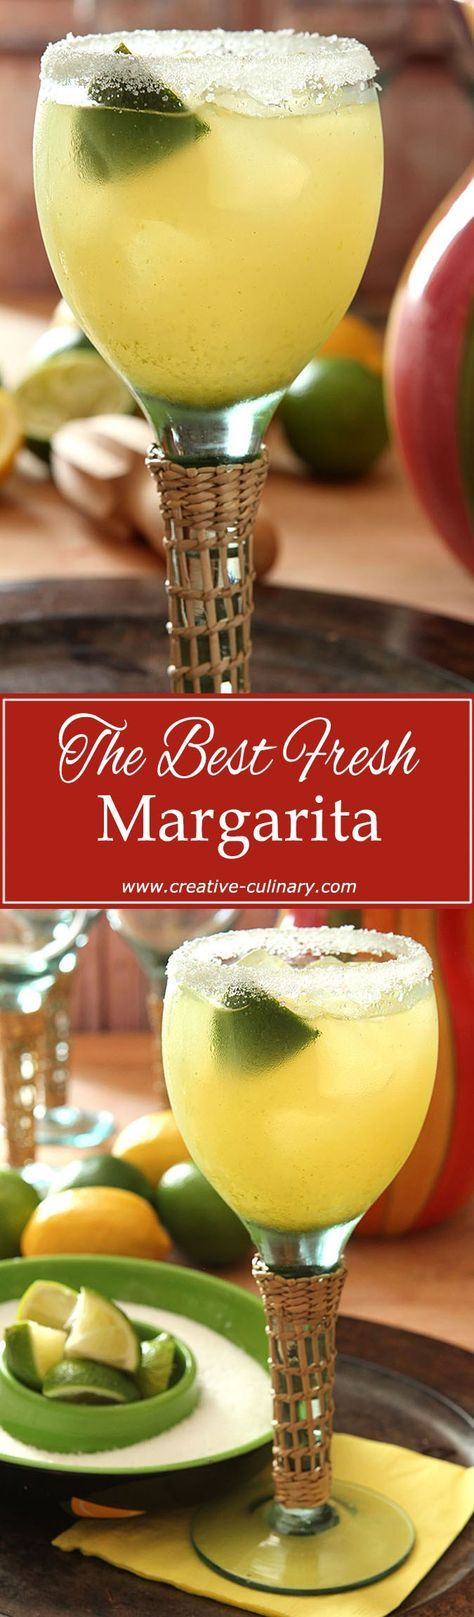 The BEST Fresh Margarita is simple. It means good tequila, fresh citrus juices and real orange liqueur. Simple and perfect!